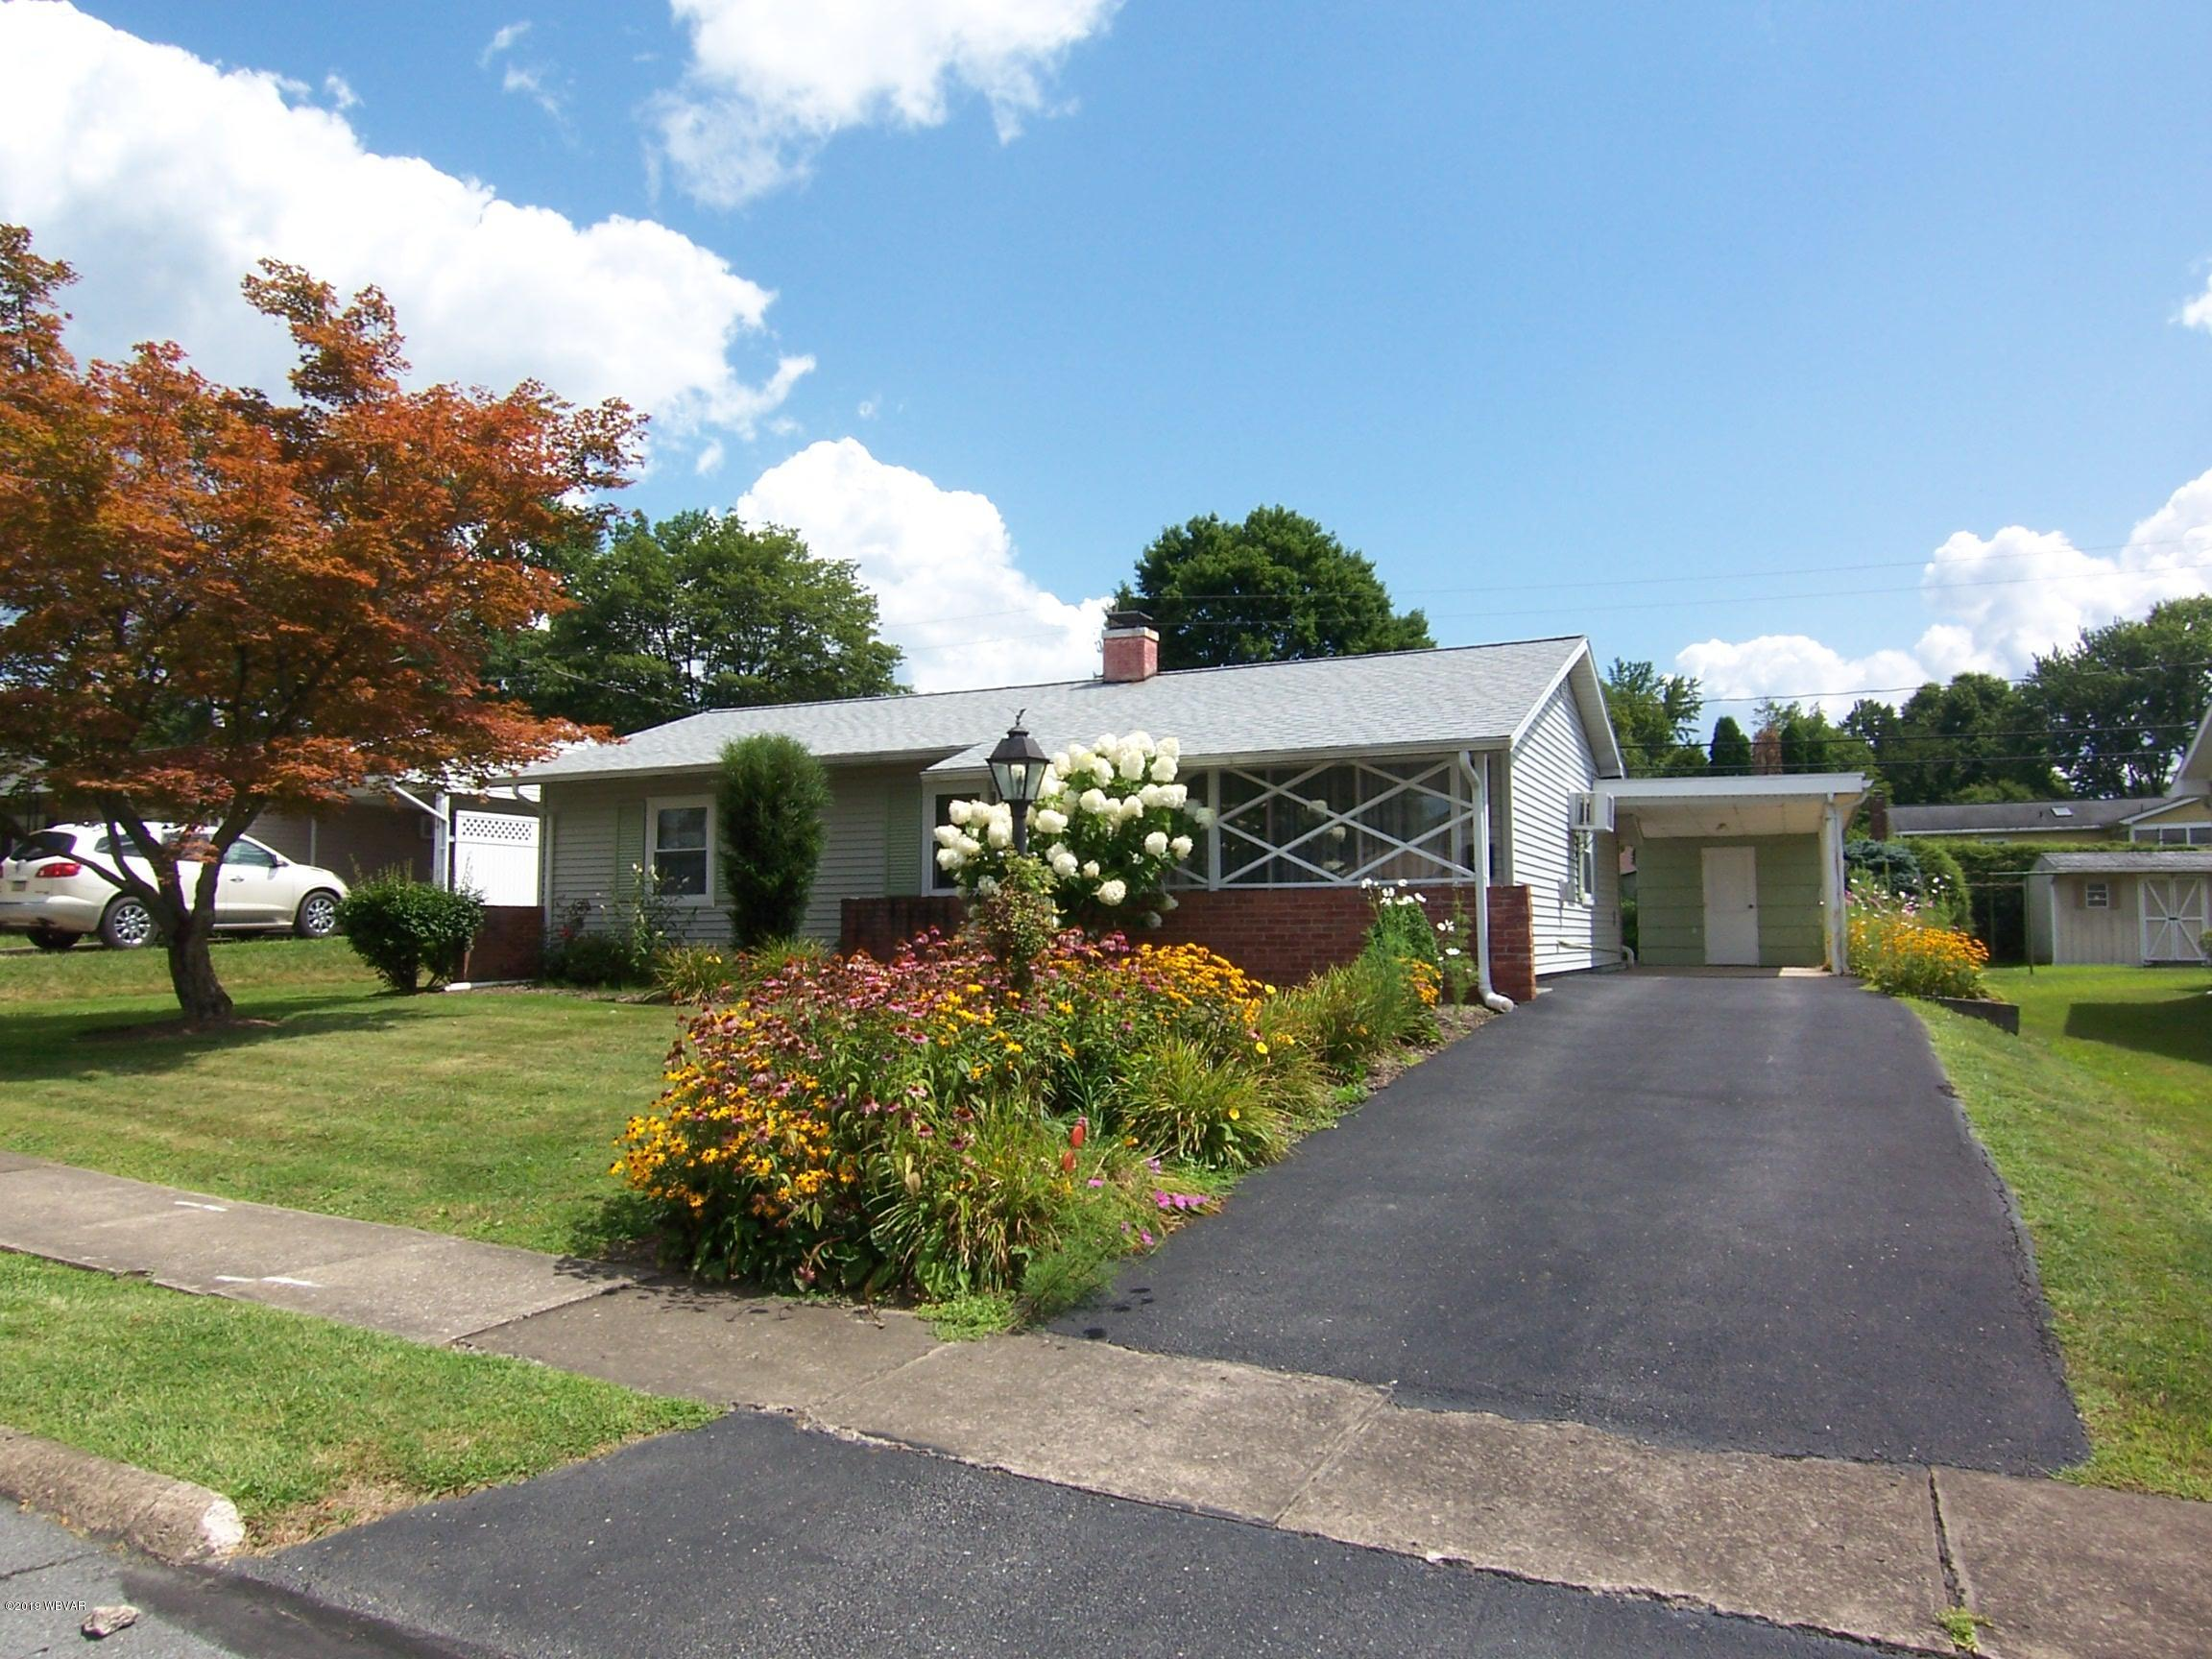 1510 COUNTRY CLUB LANE,Williamsport,PA 17701,3 Bedrooms Bedrooms,1 BathroomBathrooms,Residential,COUNTRY CLUB,WB-88204